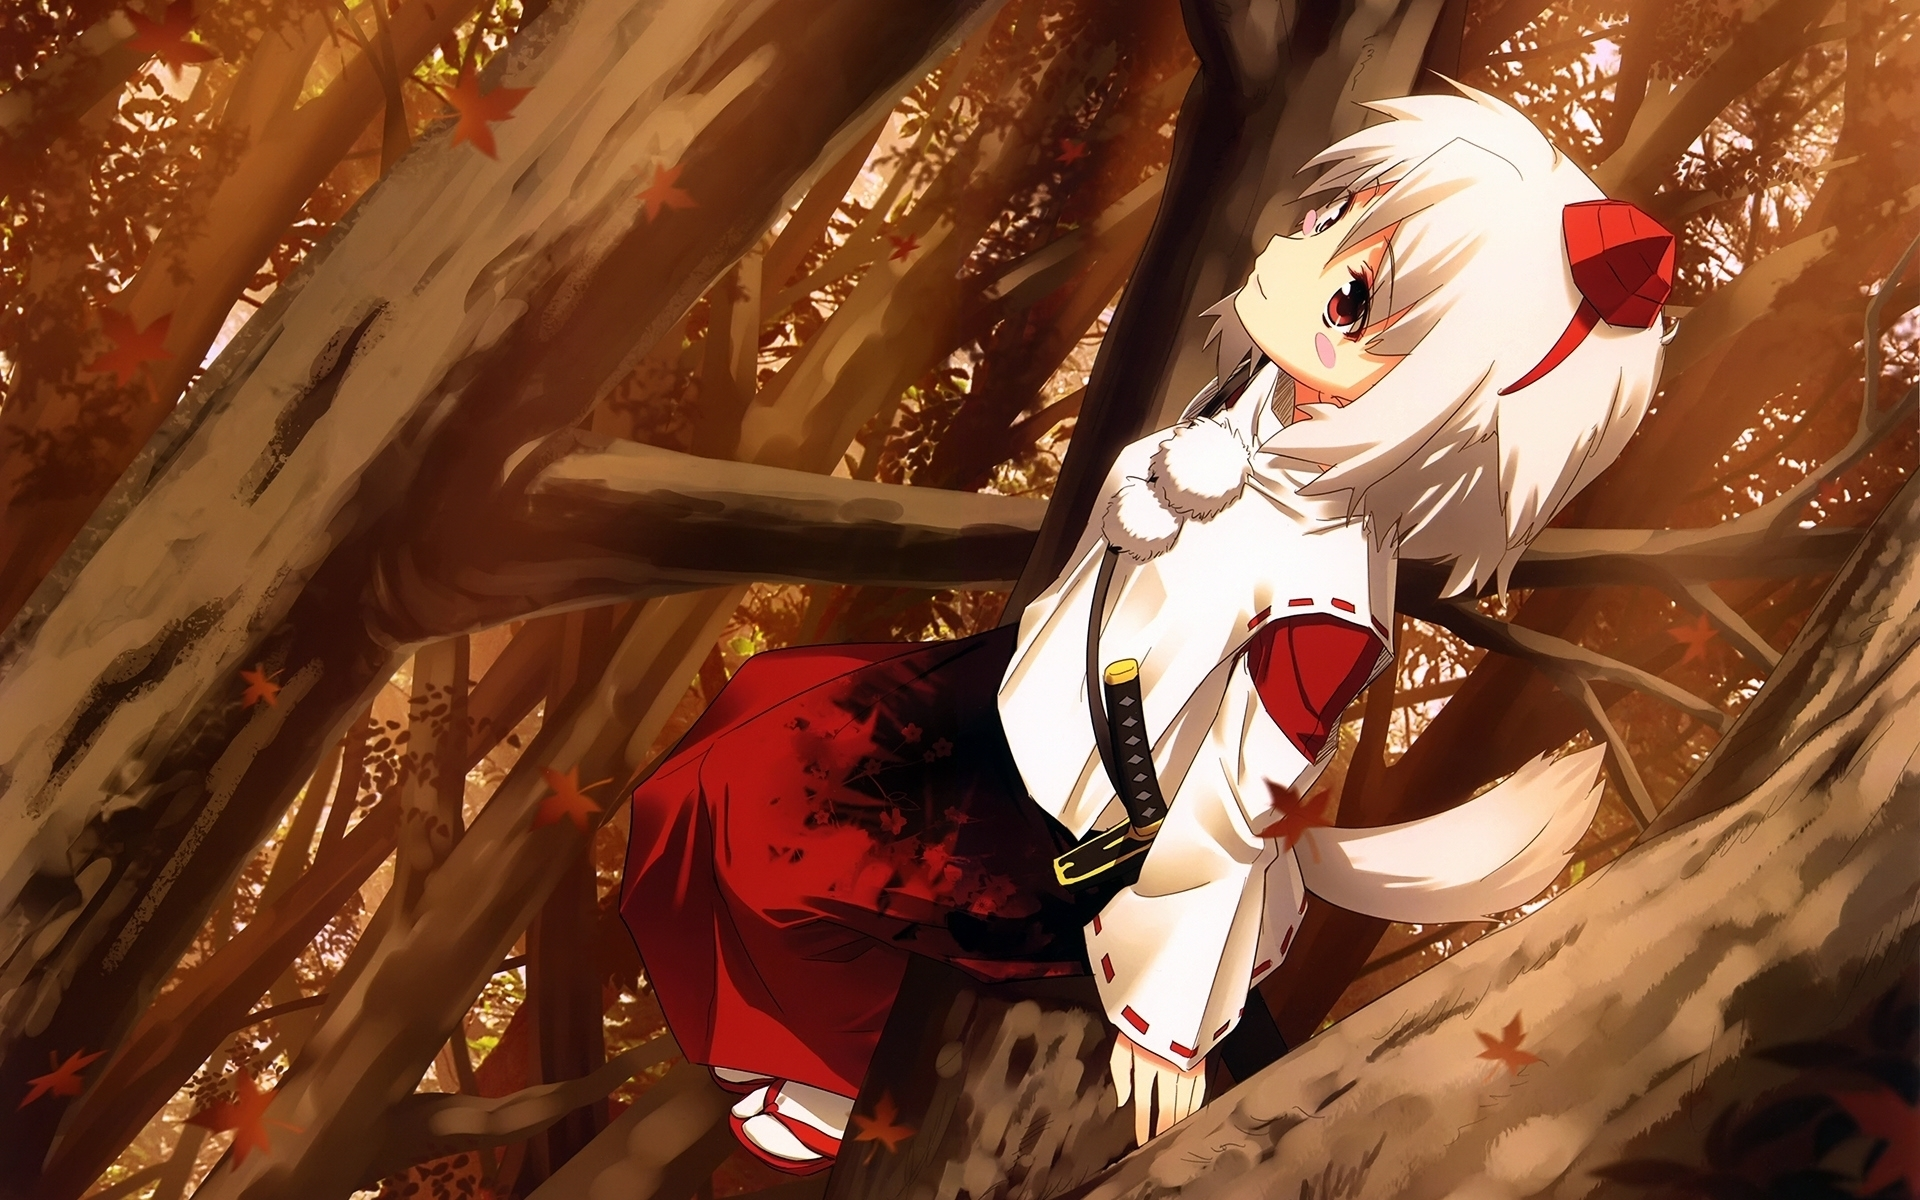 Anime Girl With White Wolf Ears And Tail HD wallpaper